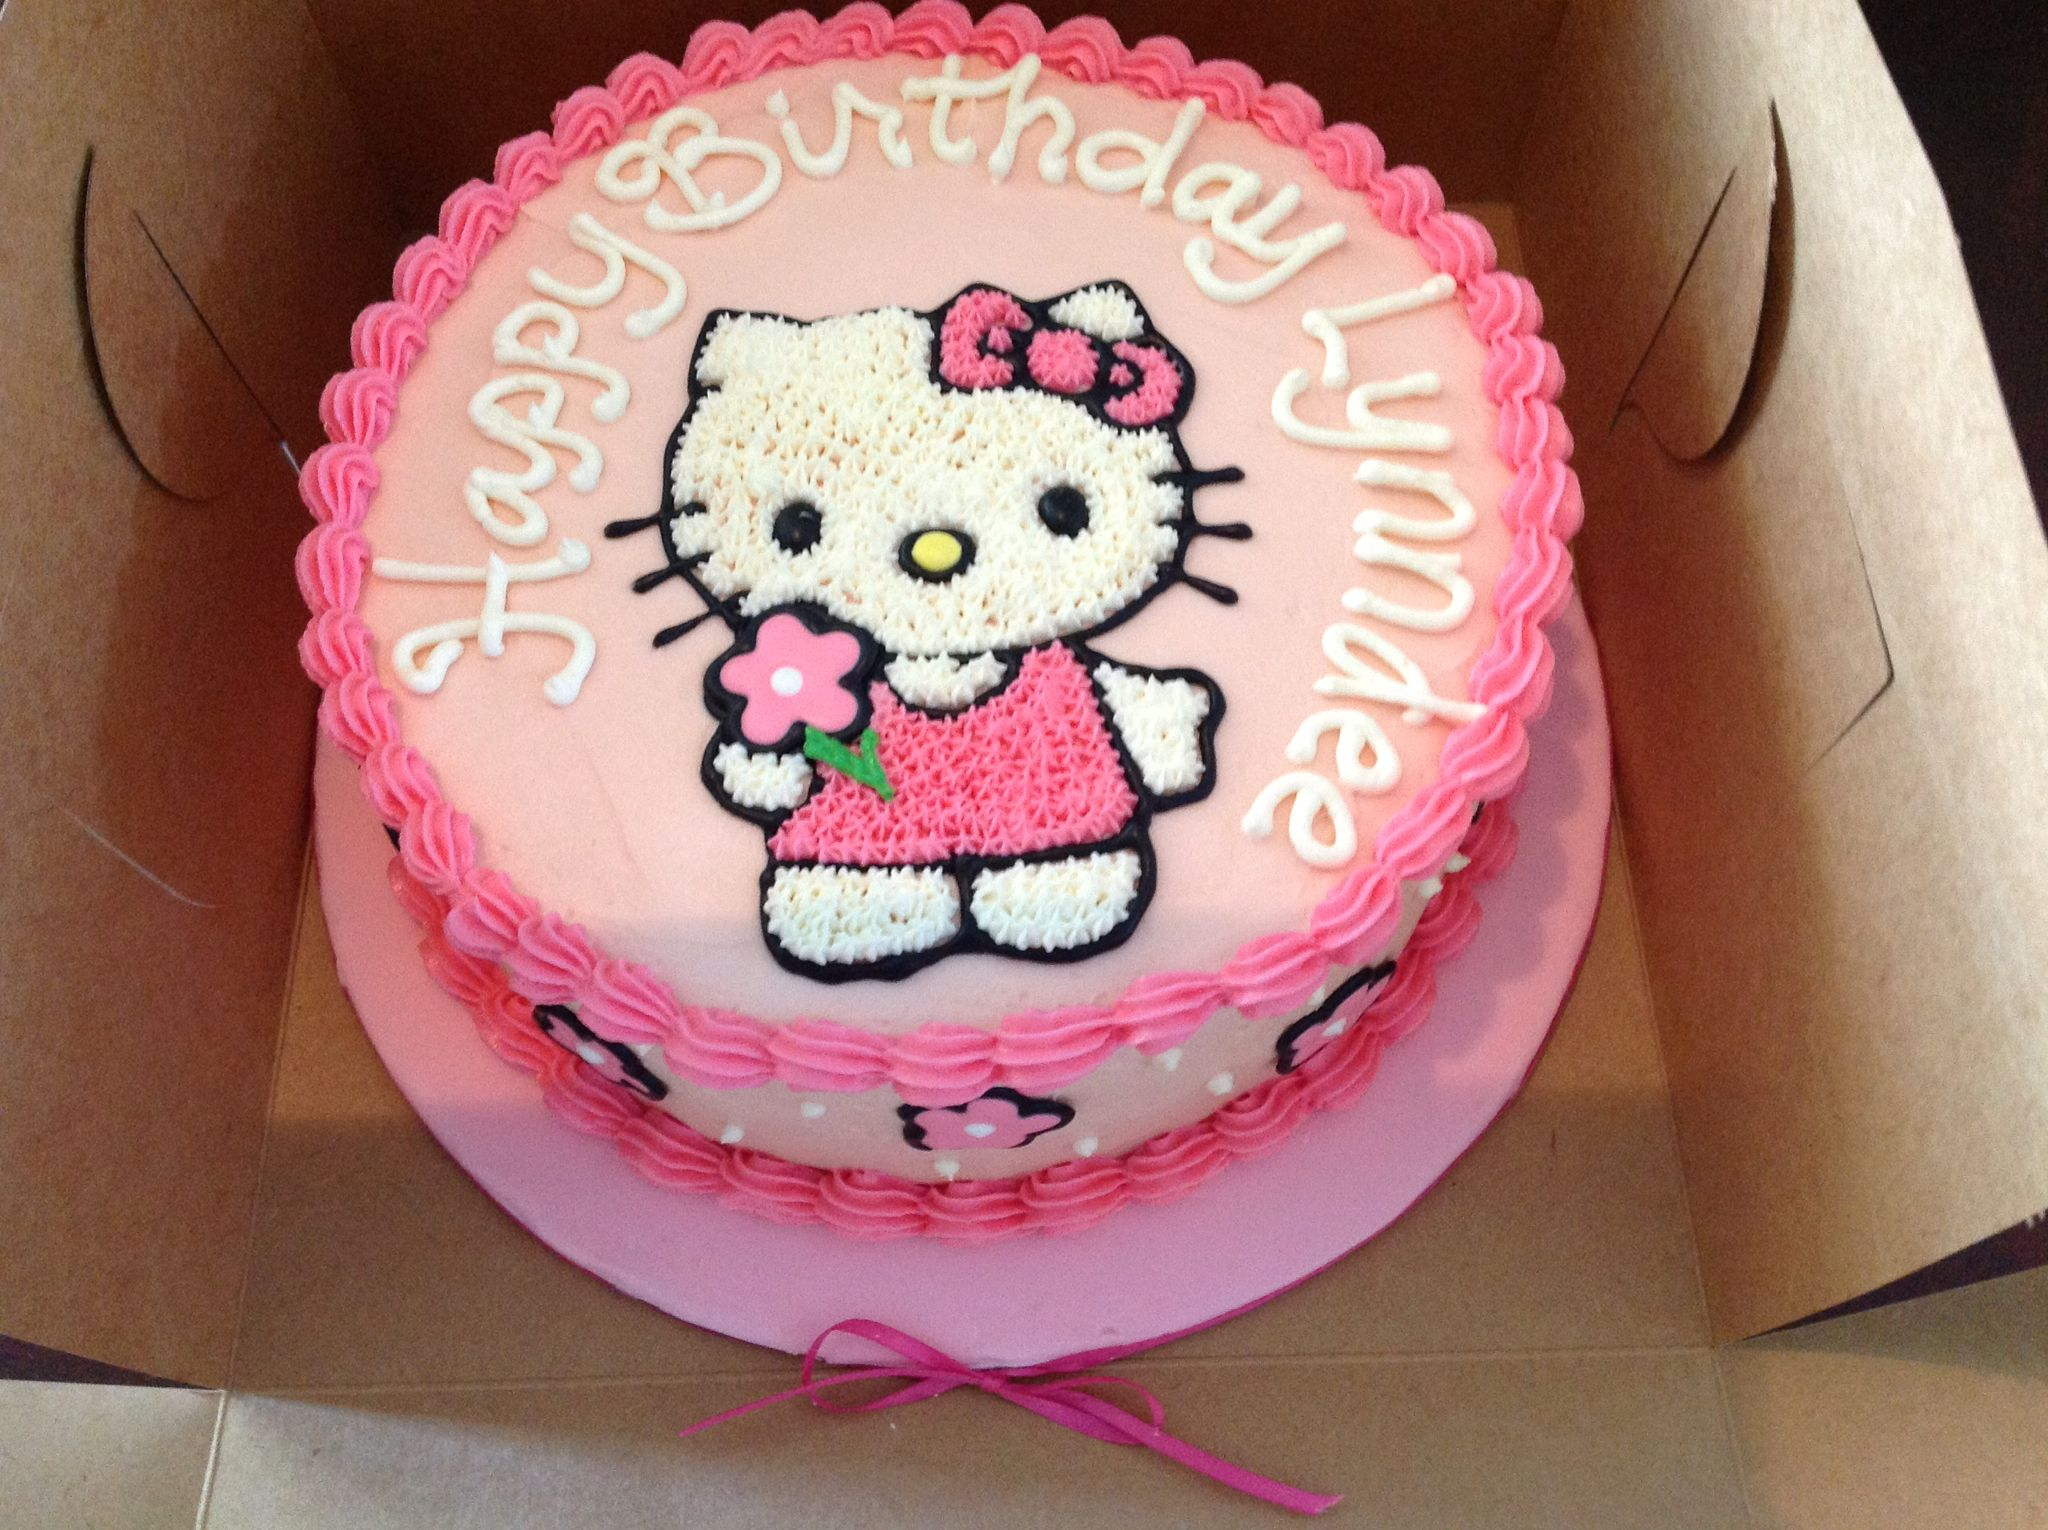 Super Hello Kitty Buttercream Cake Ulang Tahun Desain Kue Kue Ulang Personalised Birthday Cards Cominlily Jamesorg